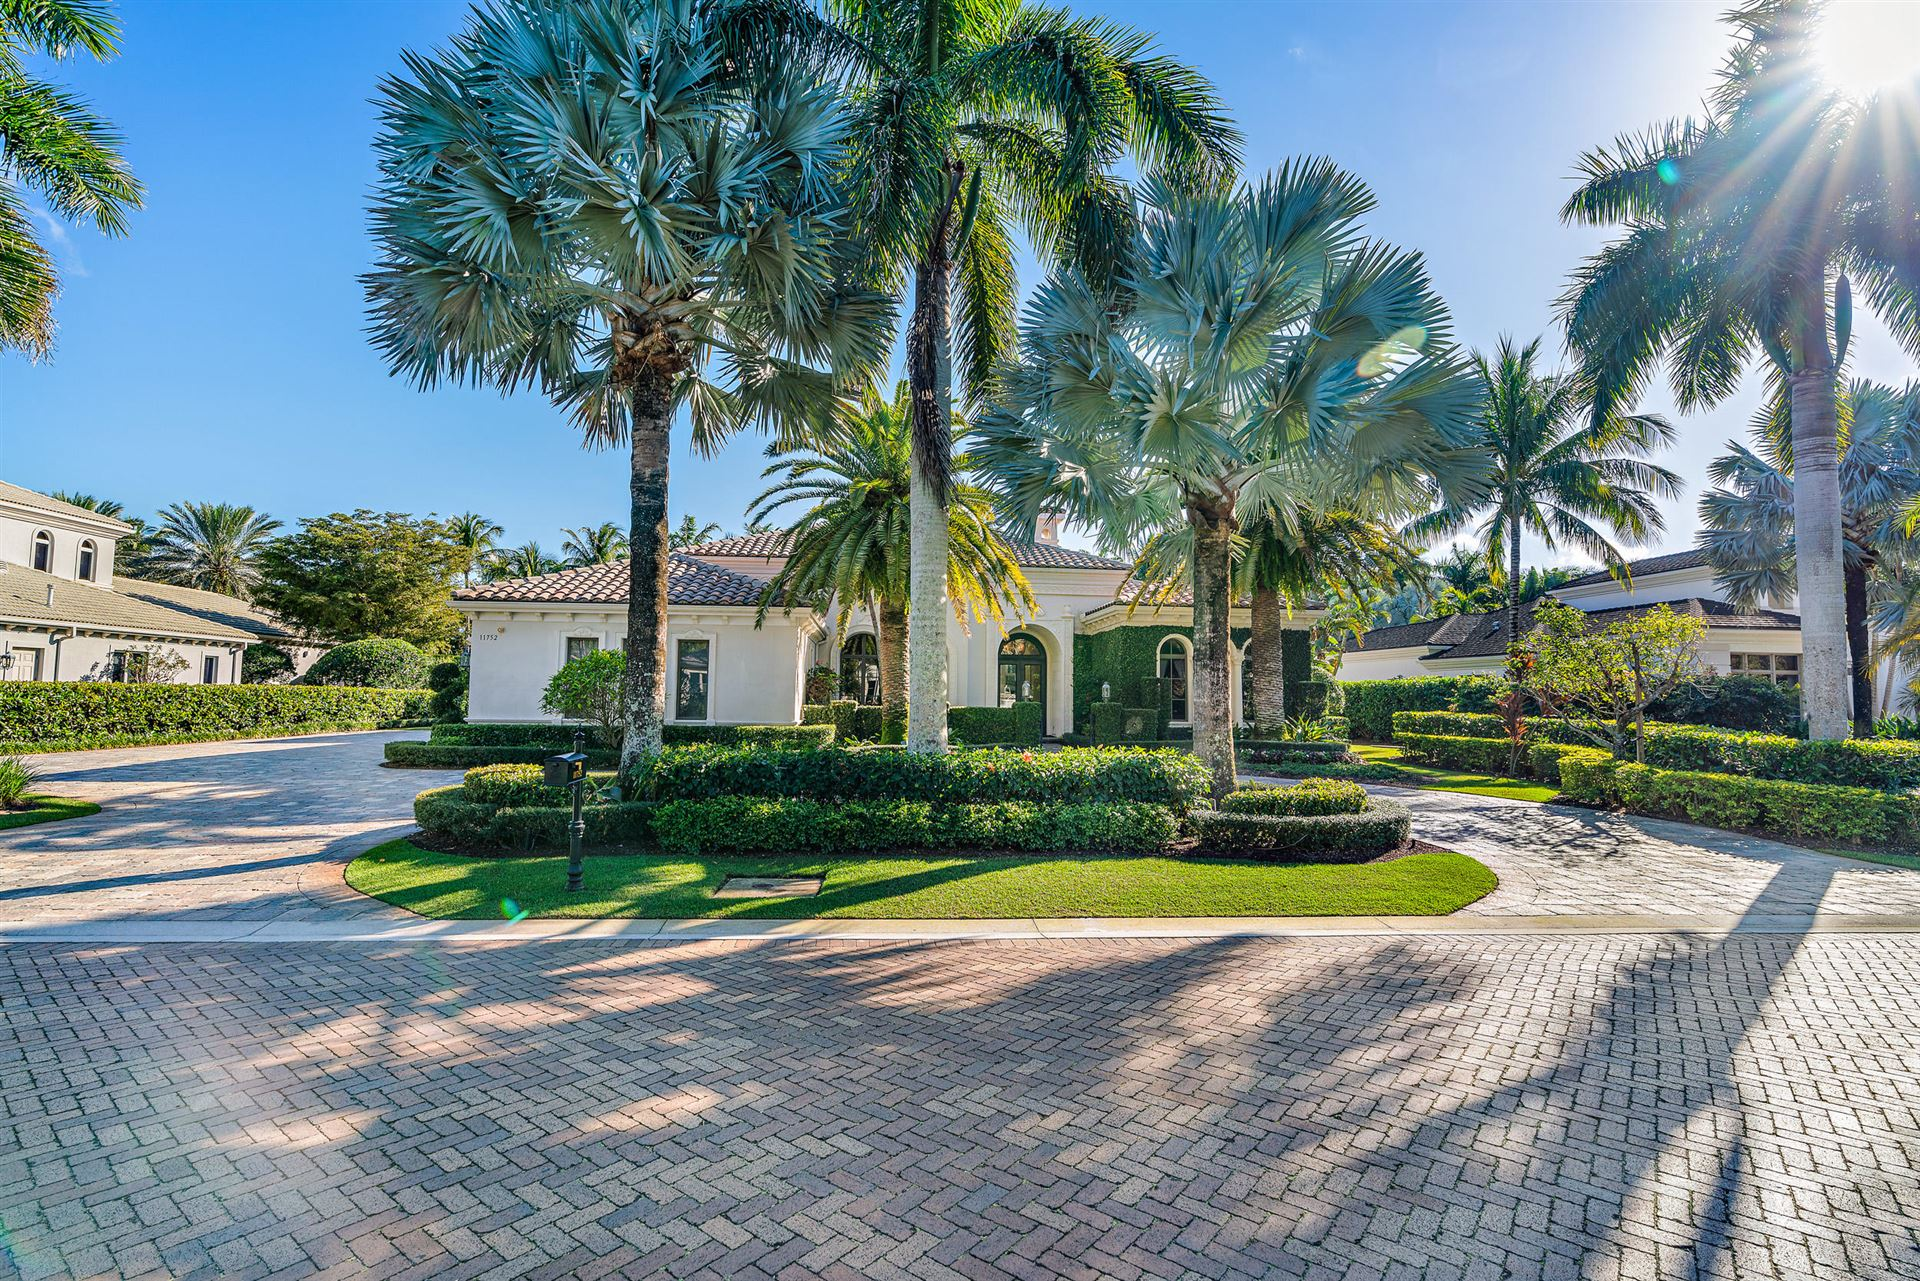 Photo of 11752 Elina Court, Palm Beach Gardens, FL 33418 (MLS # RX-10692541)